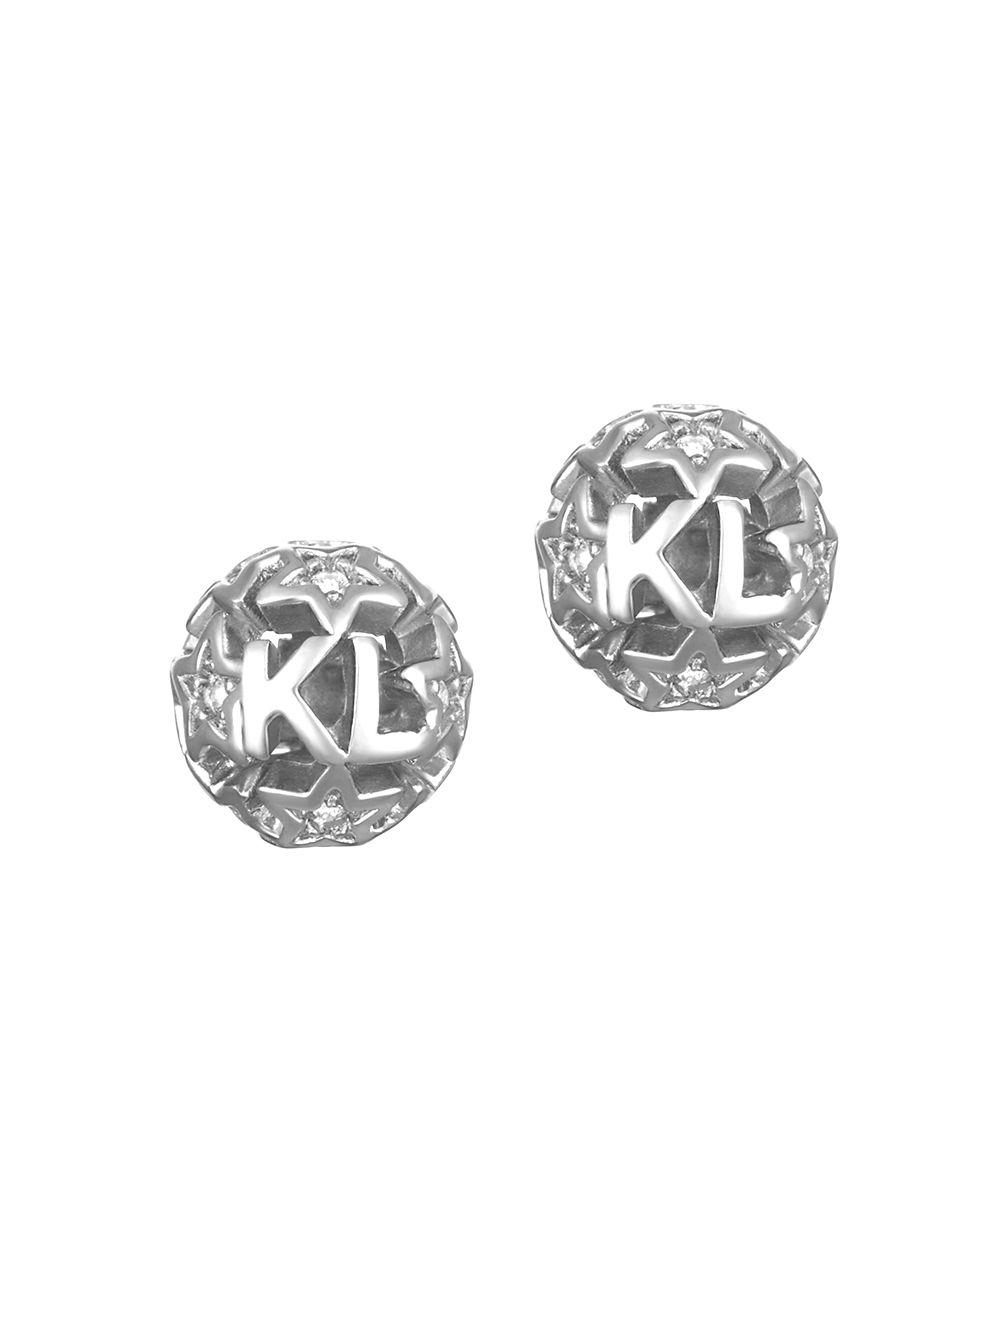 Karl Lagerfeld Women S Metallic Star Ball Swarovski Crystal And Earrings